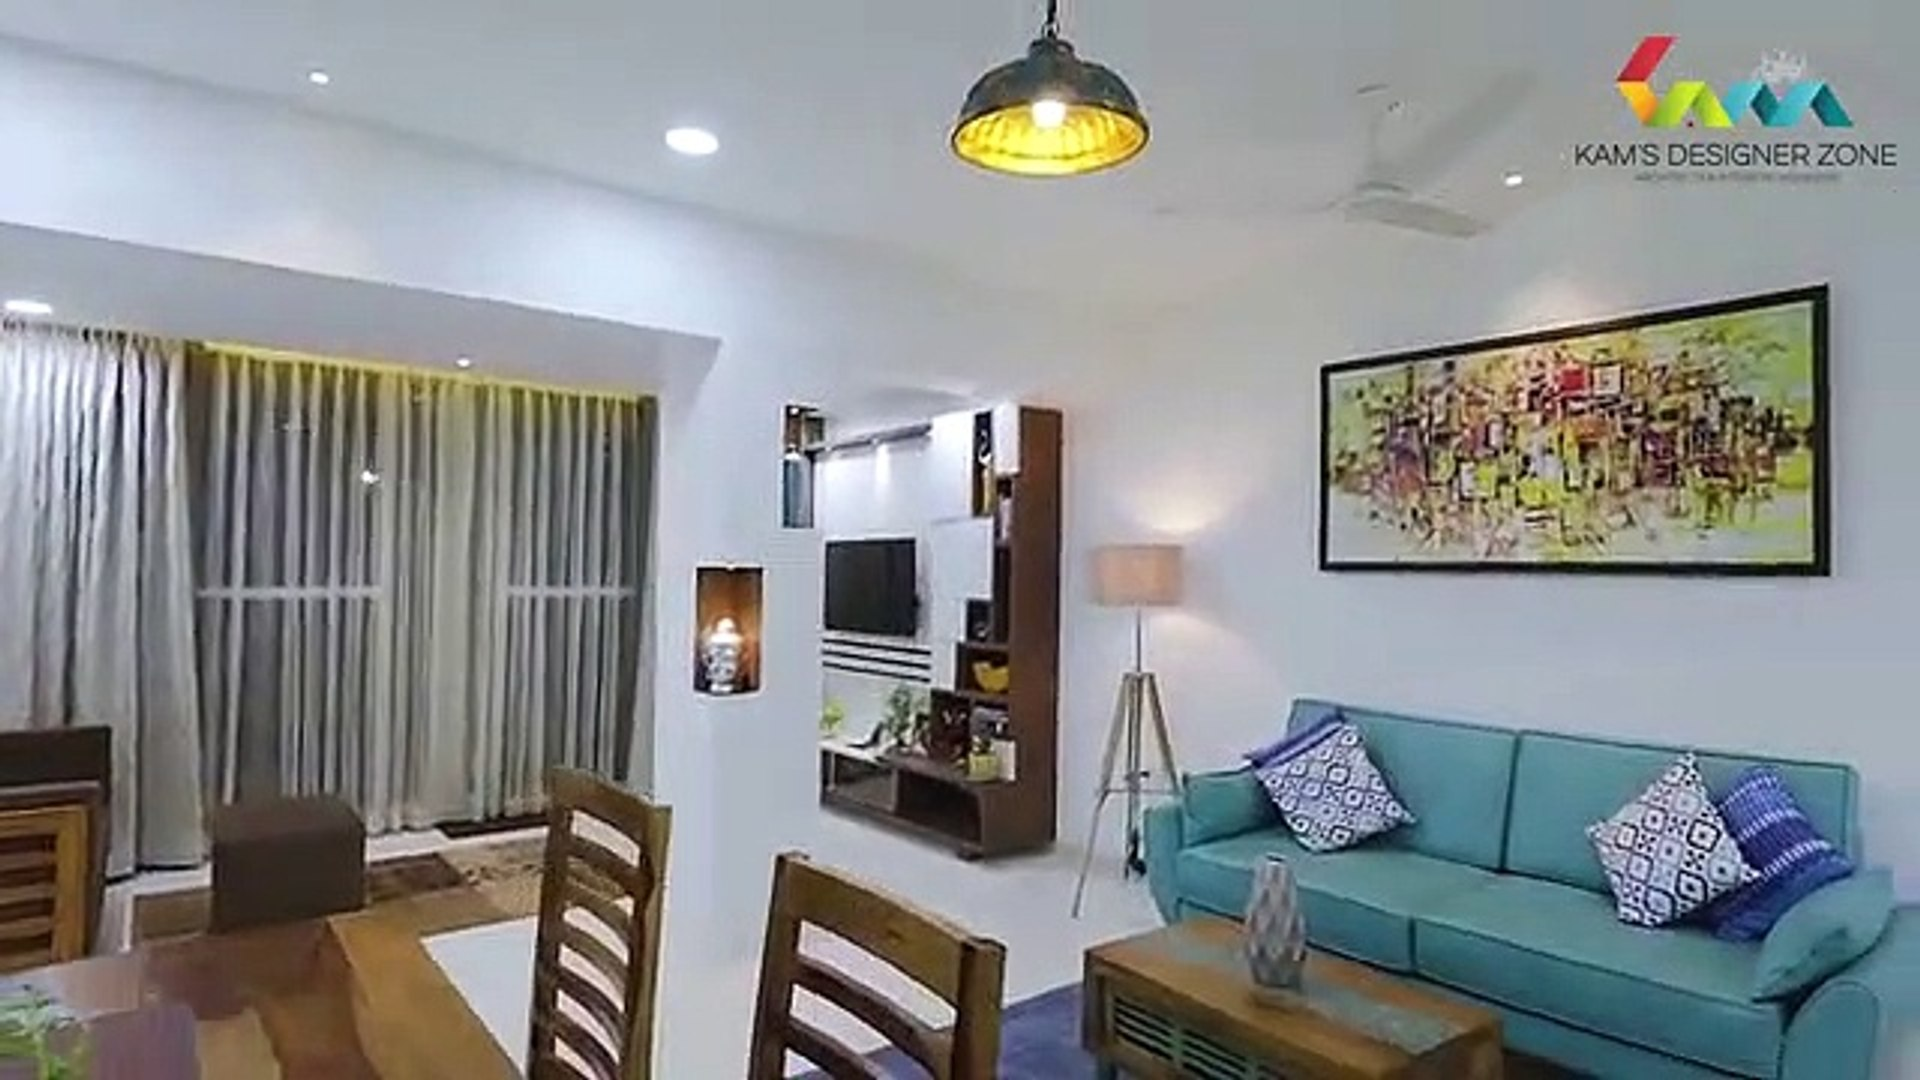 2 Bhk Apt Interior Design Cost Effective Design Simple And Beautiful Kams Designer Zone Pune Video Dailymotion